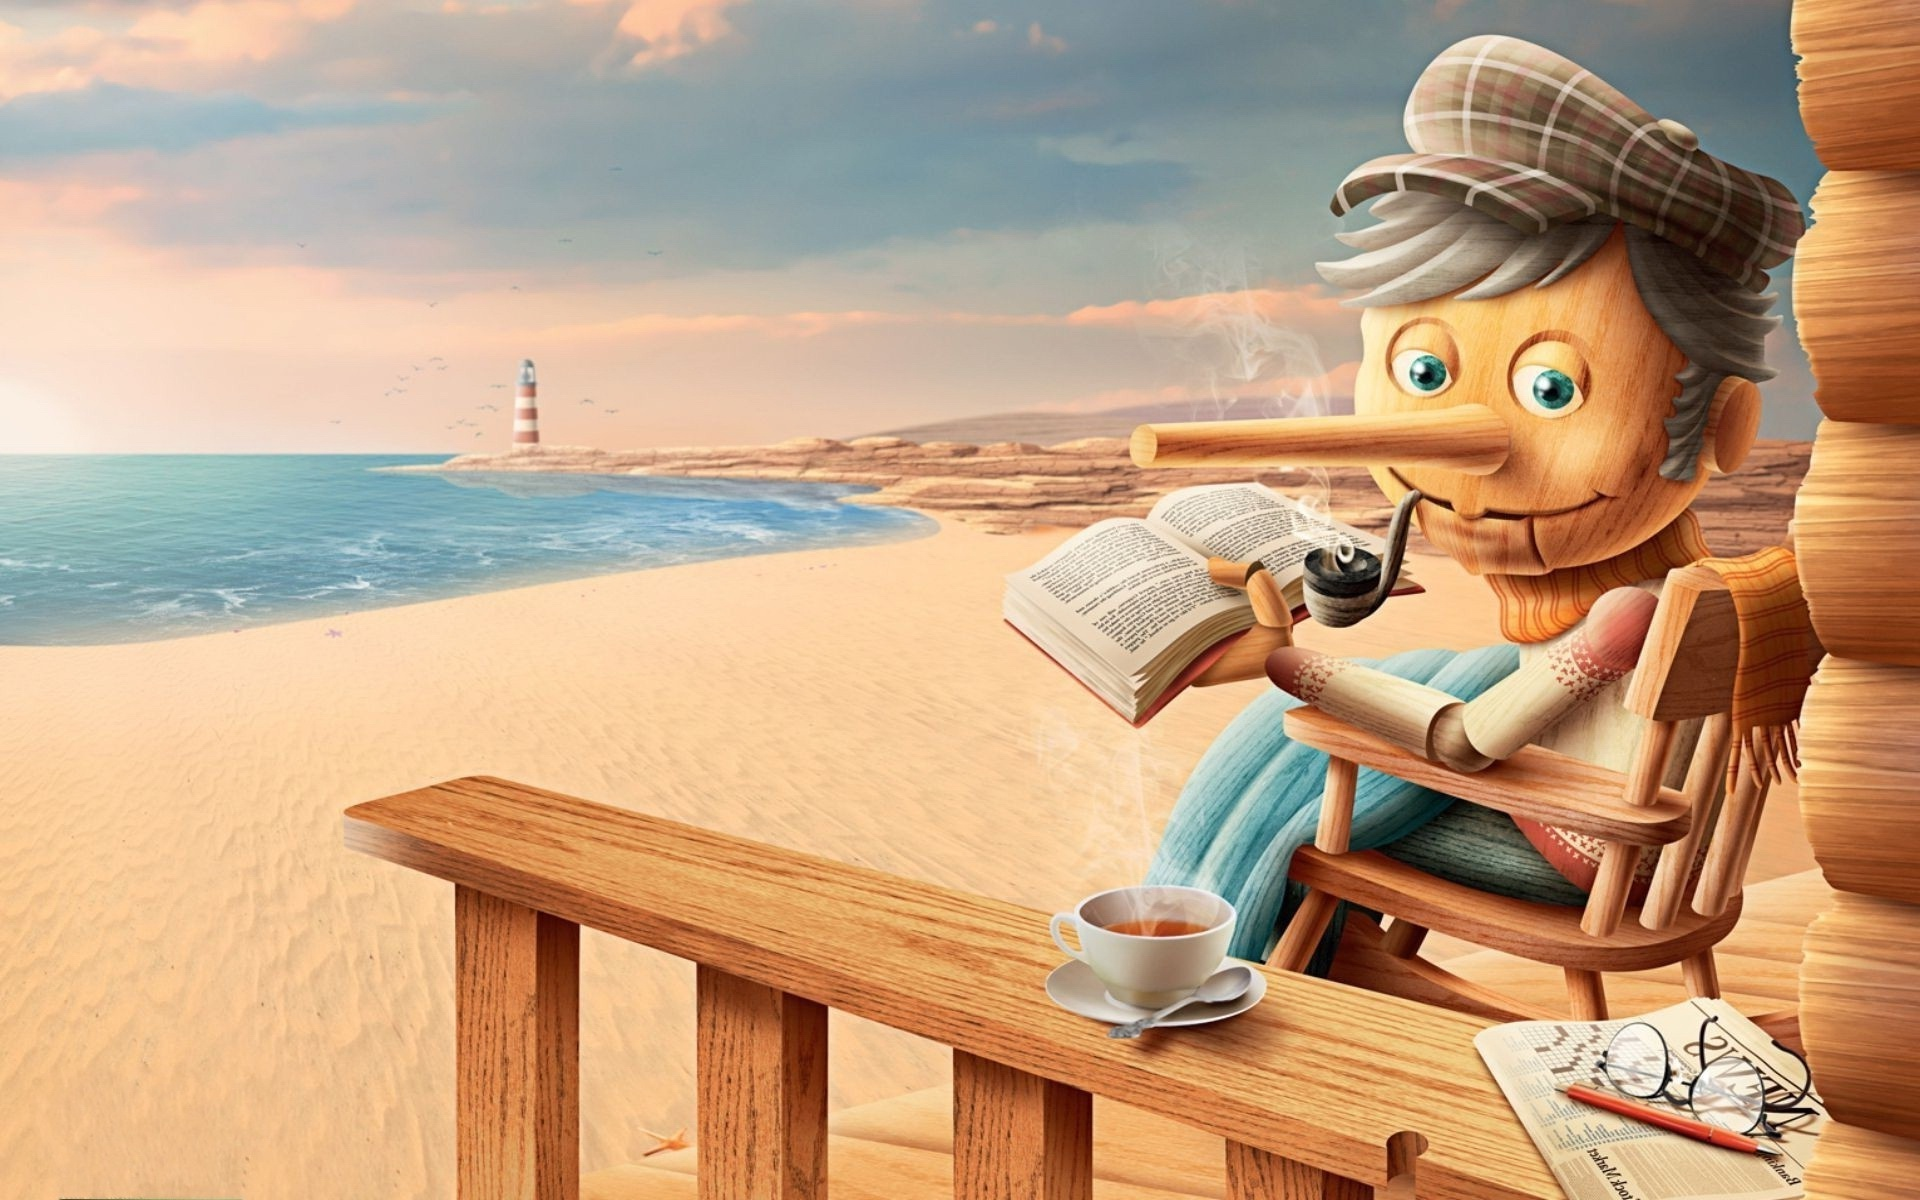 Old Pinocchio on the beach